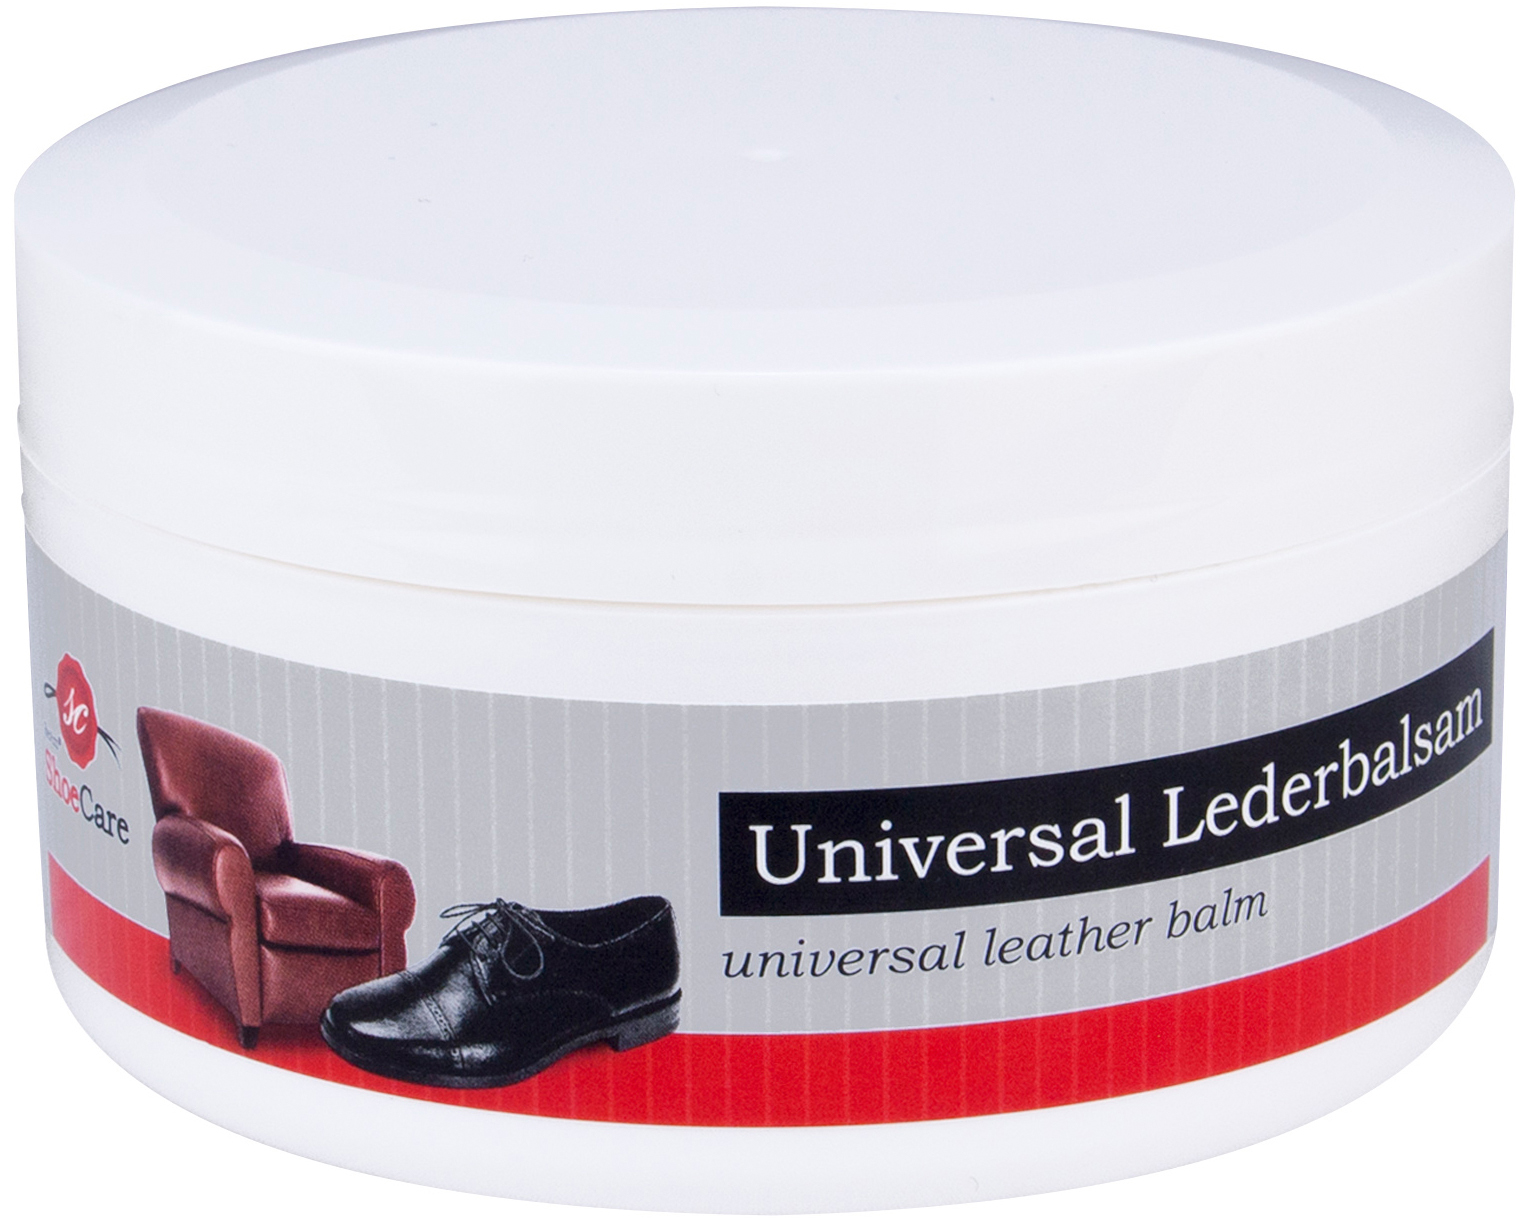 00680 - universal leather balm 300 ml